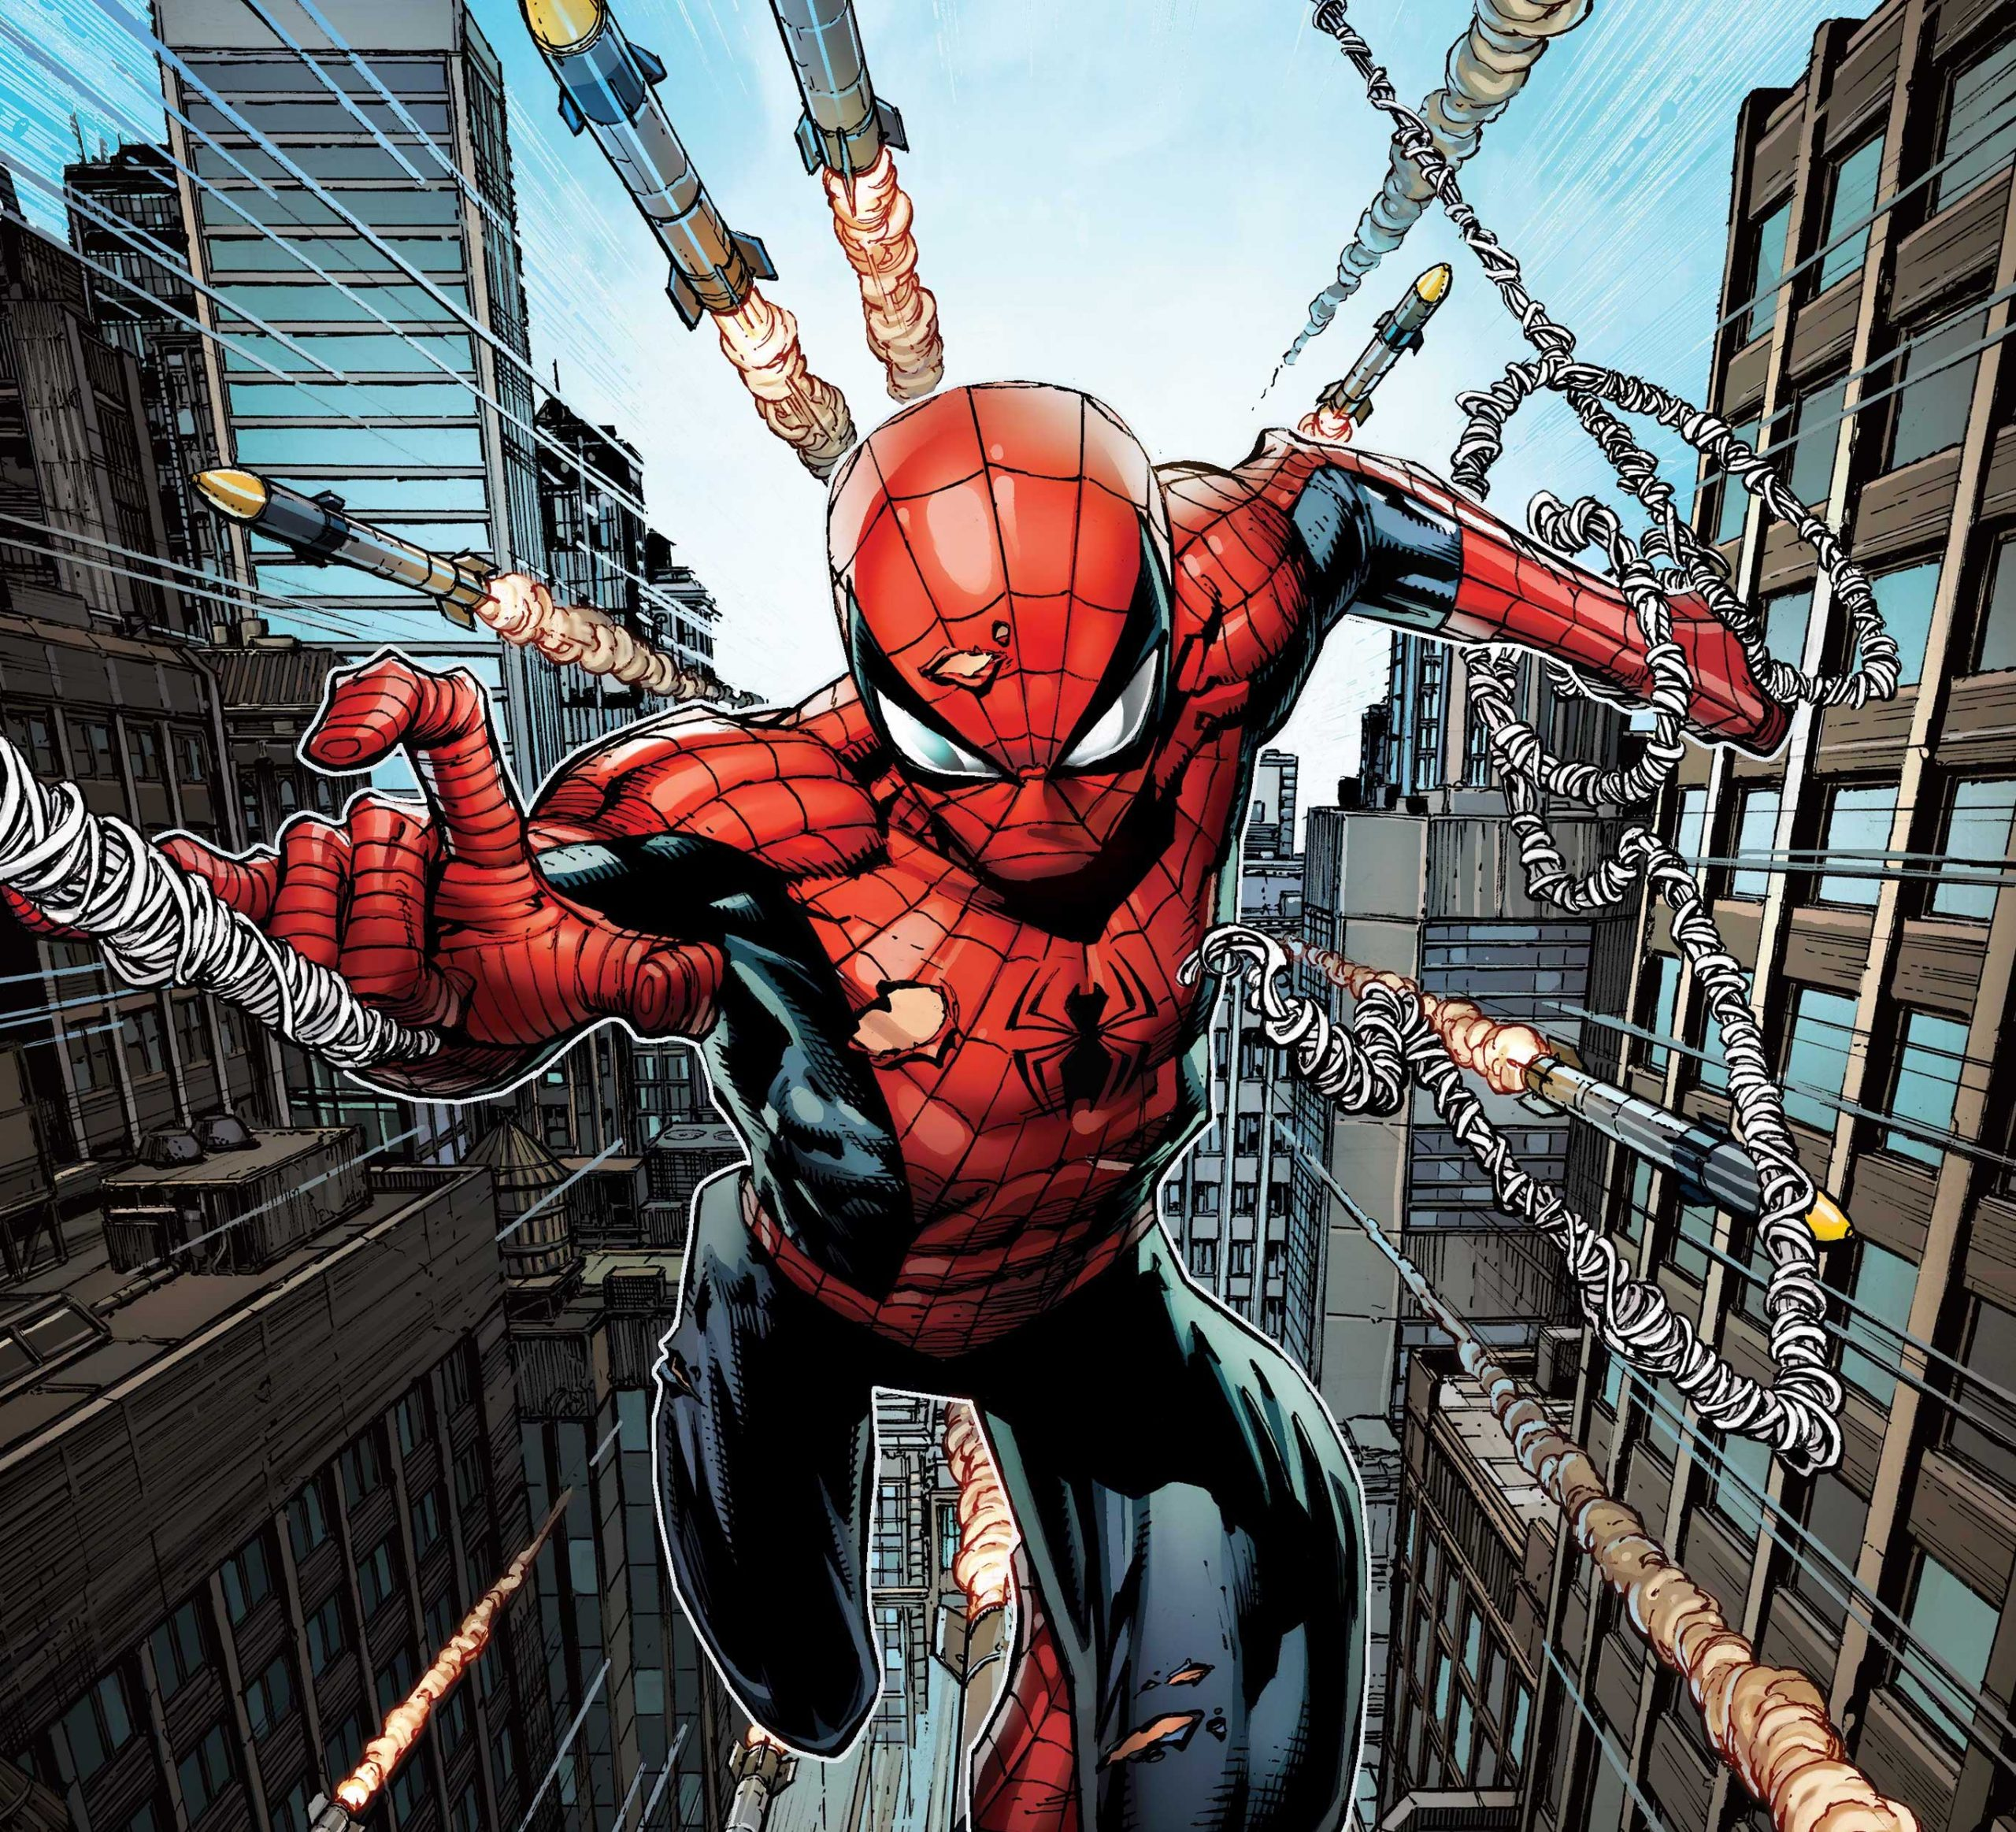 'Non-Stop Spider-Man' #1 is everything you could ask for in a great Spidey comic